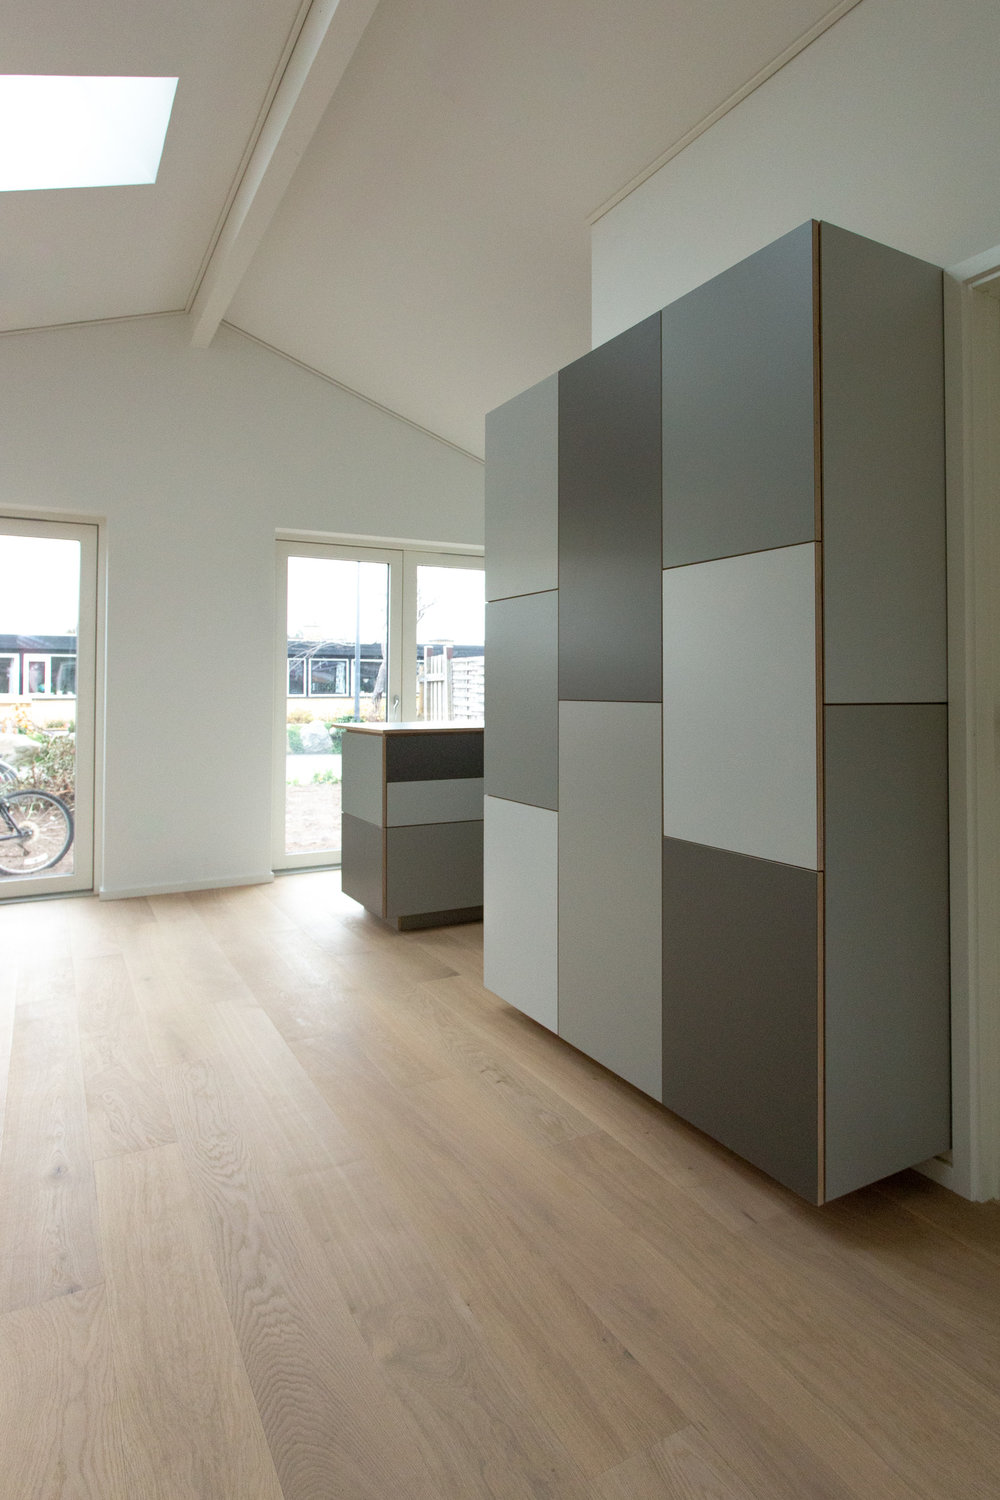 0916-m4v1-kitchen-island-wrapping corner--shades of grey-stay-project-2500.jpg